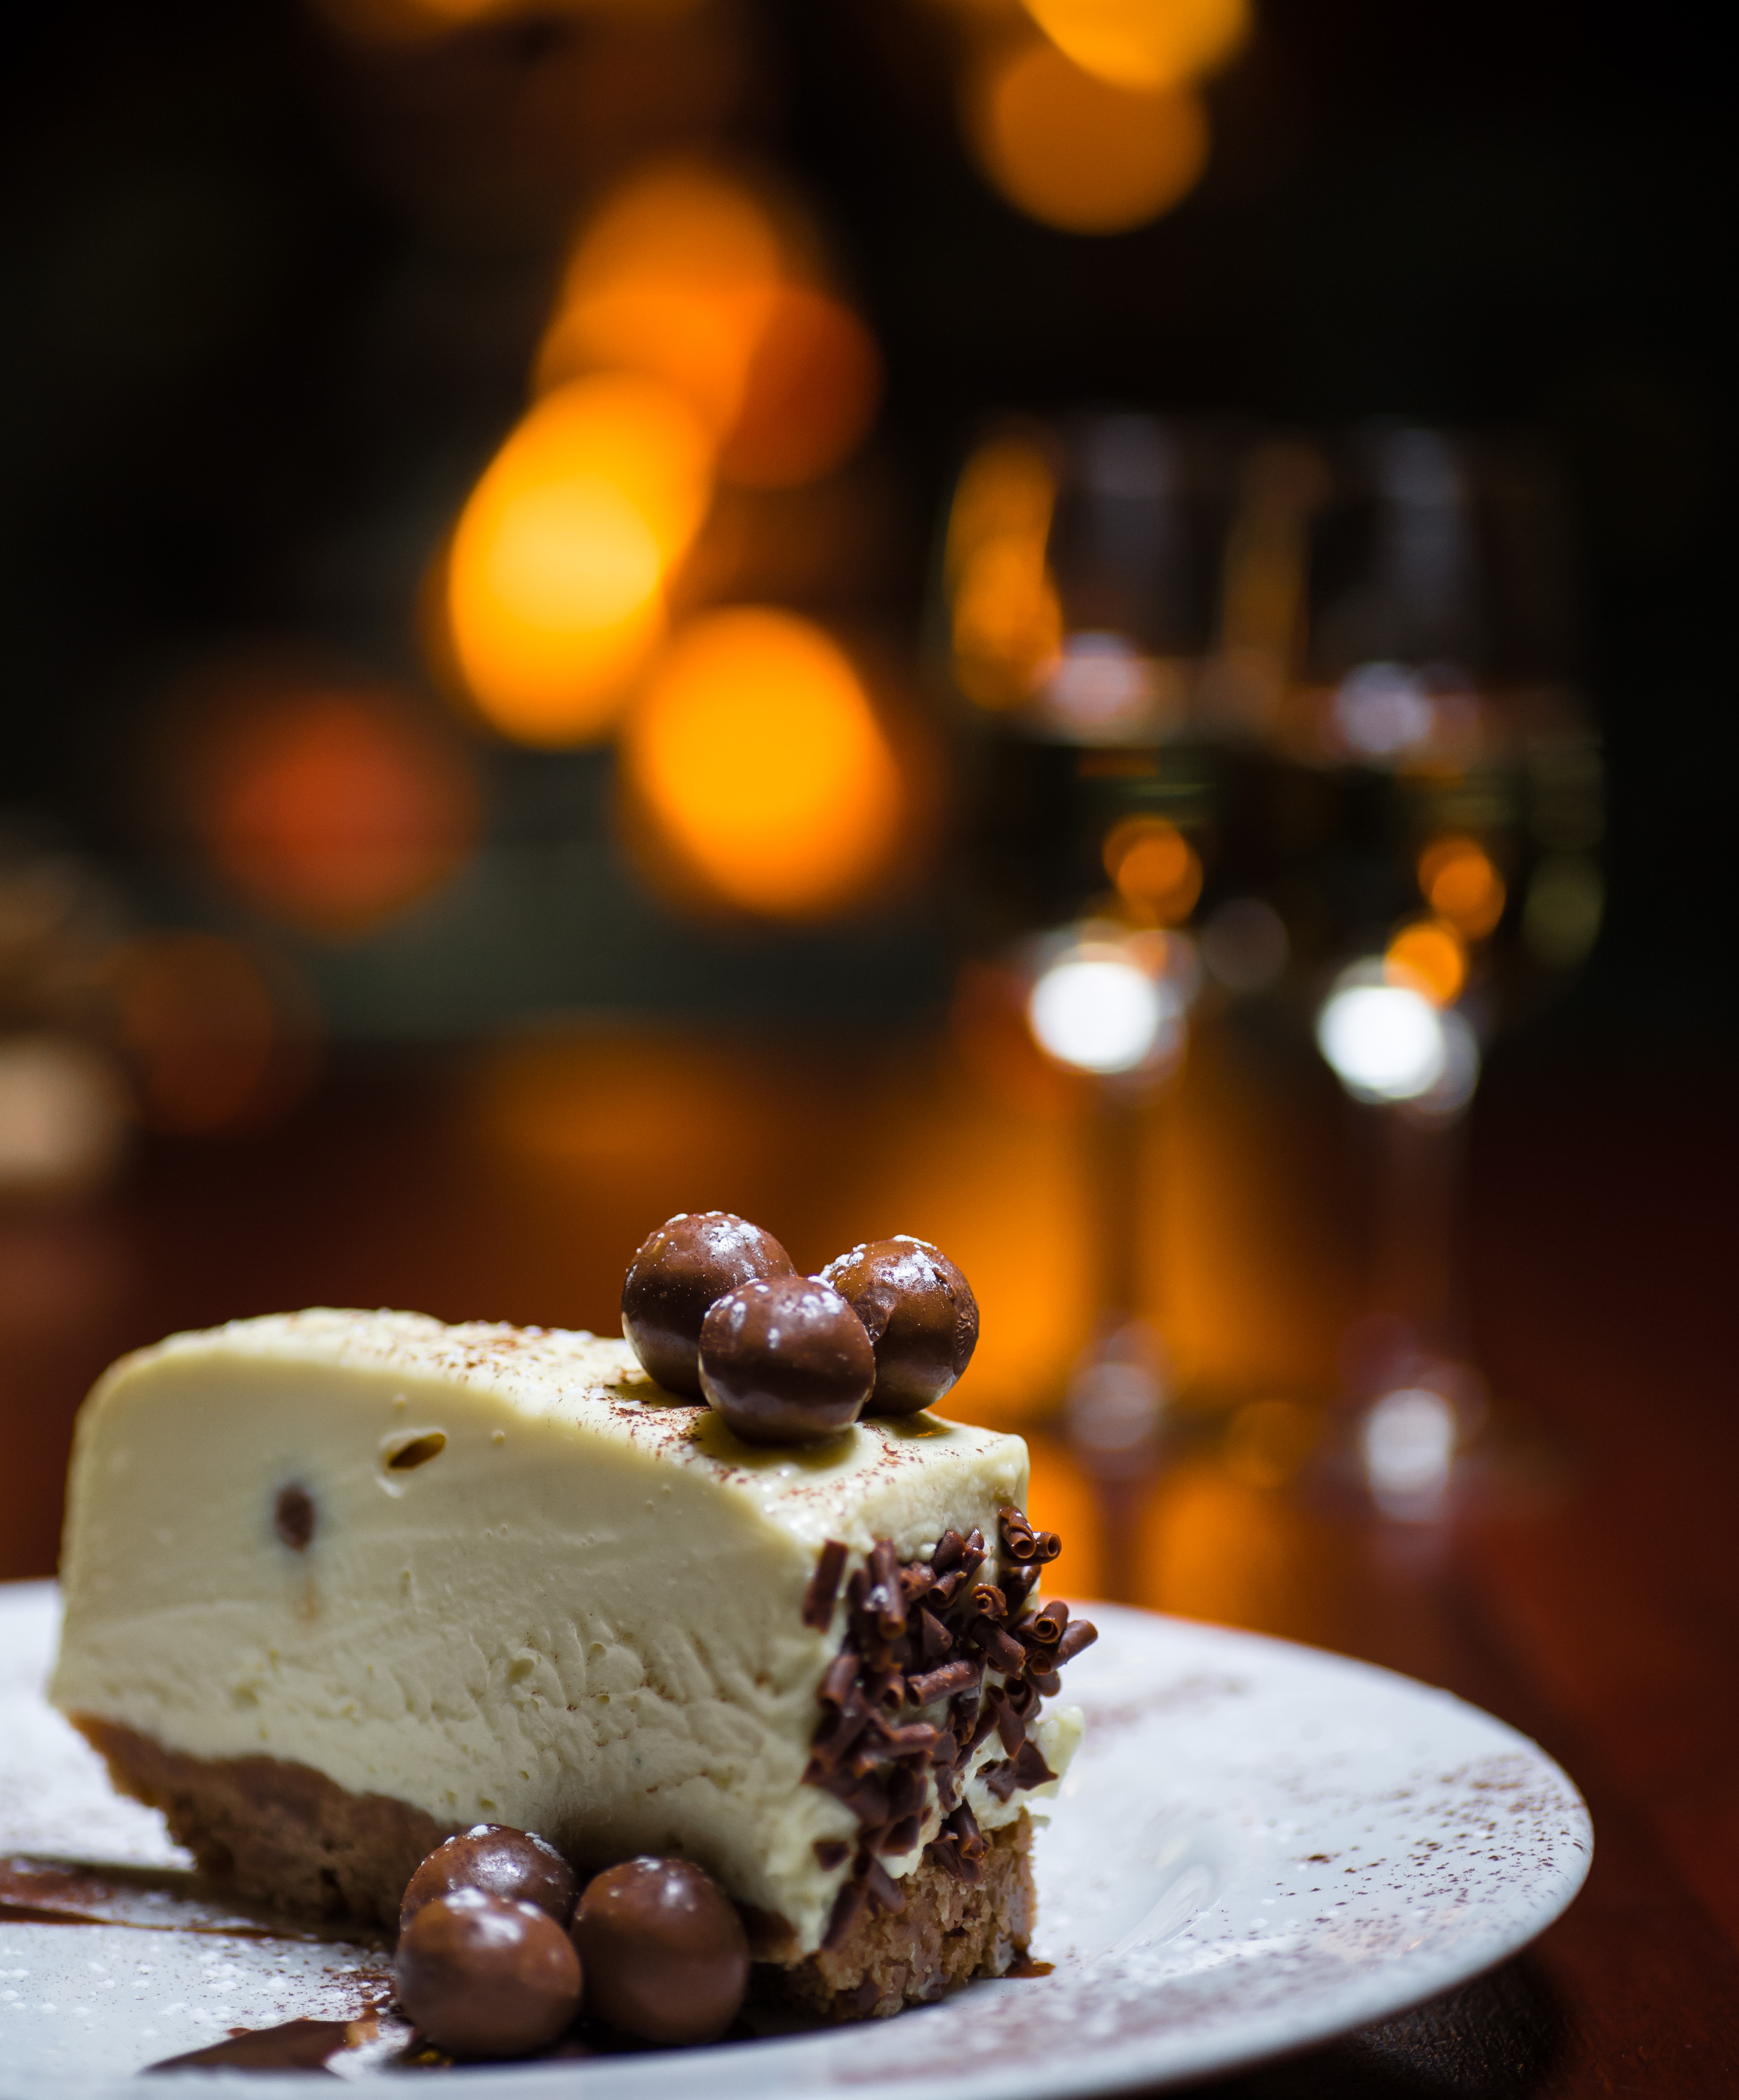 white chocolate & malteaser cheesecake